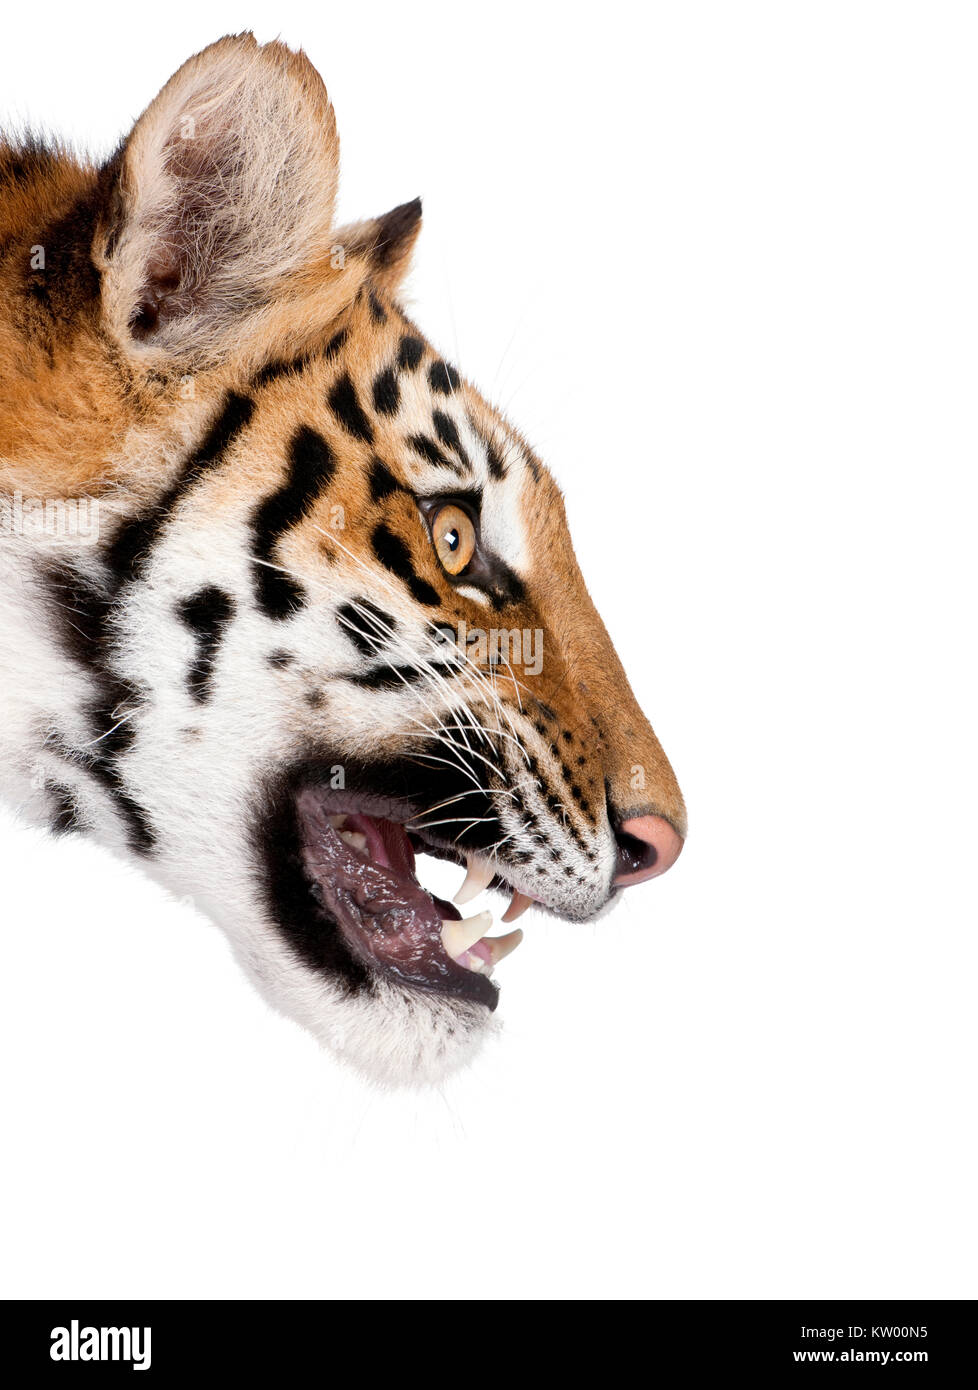 Close-up profile of Bengal tiger snarling, Panthera tigris tigris, 1 year old, in front of white background, studio - Stock Image